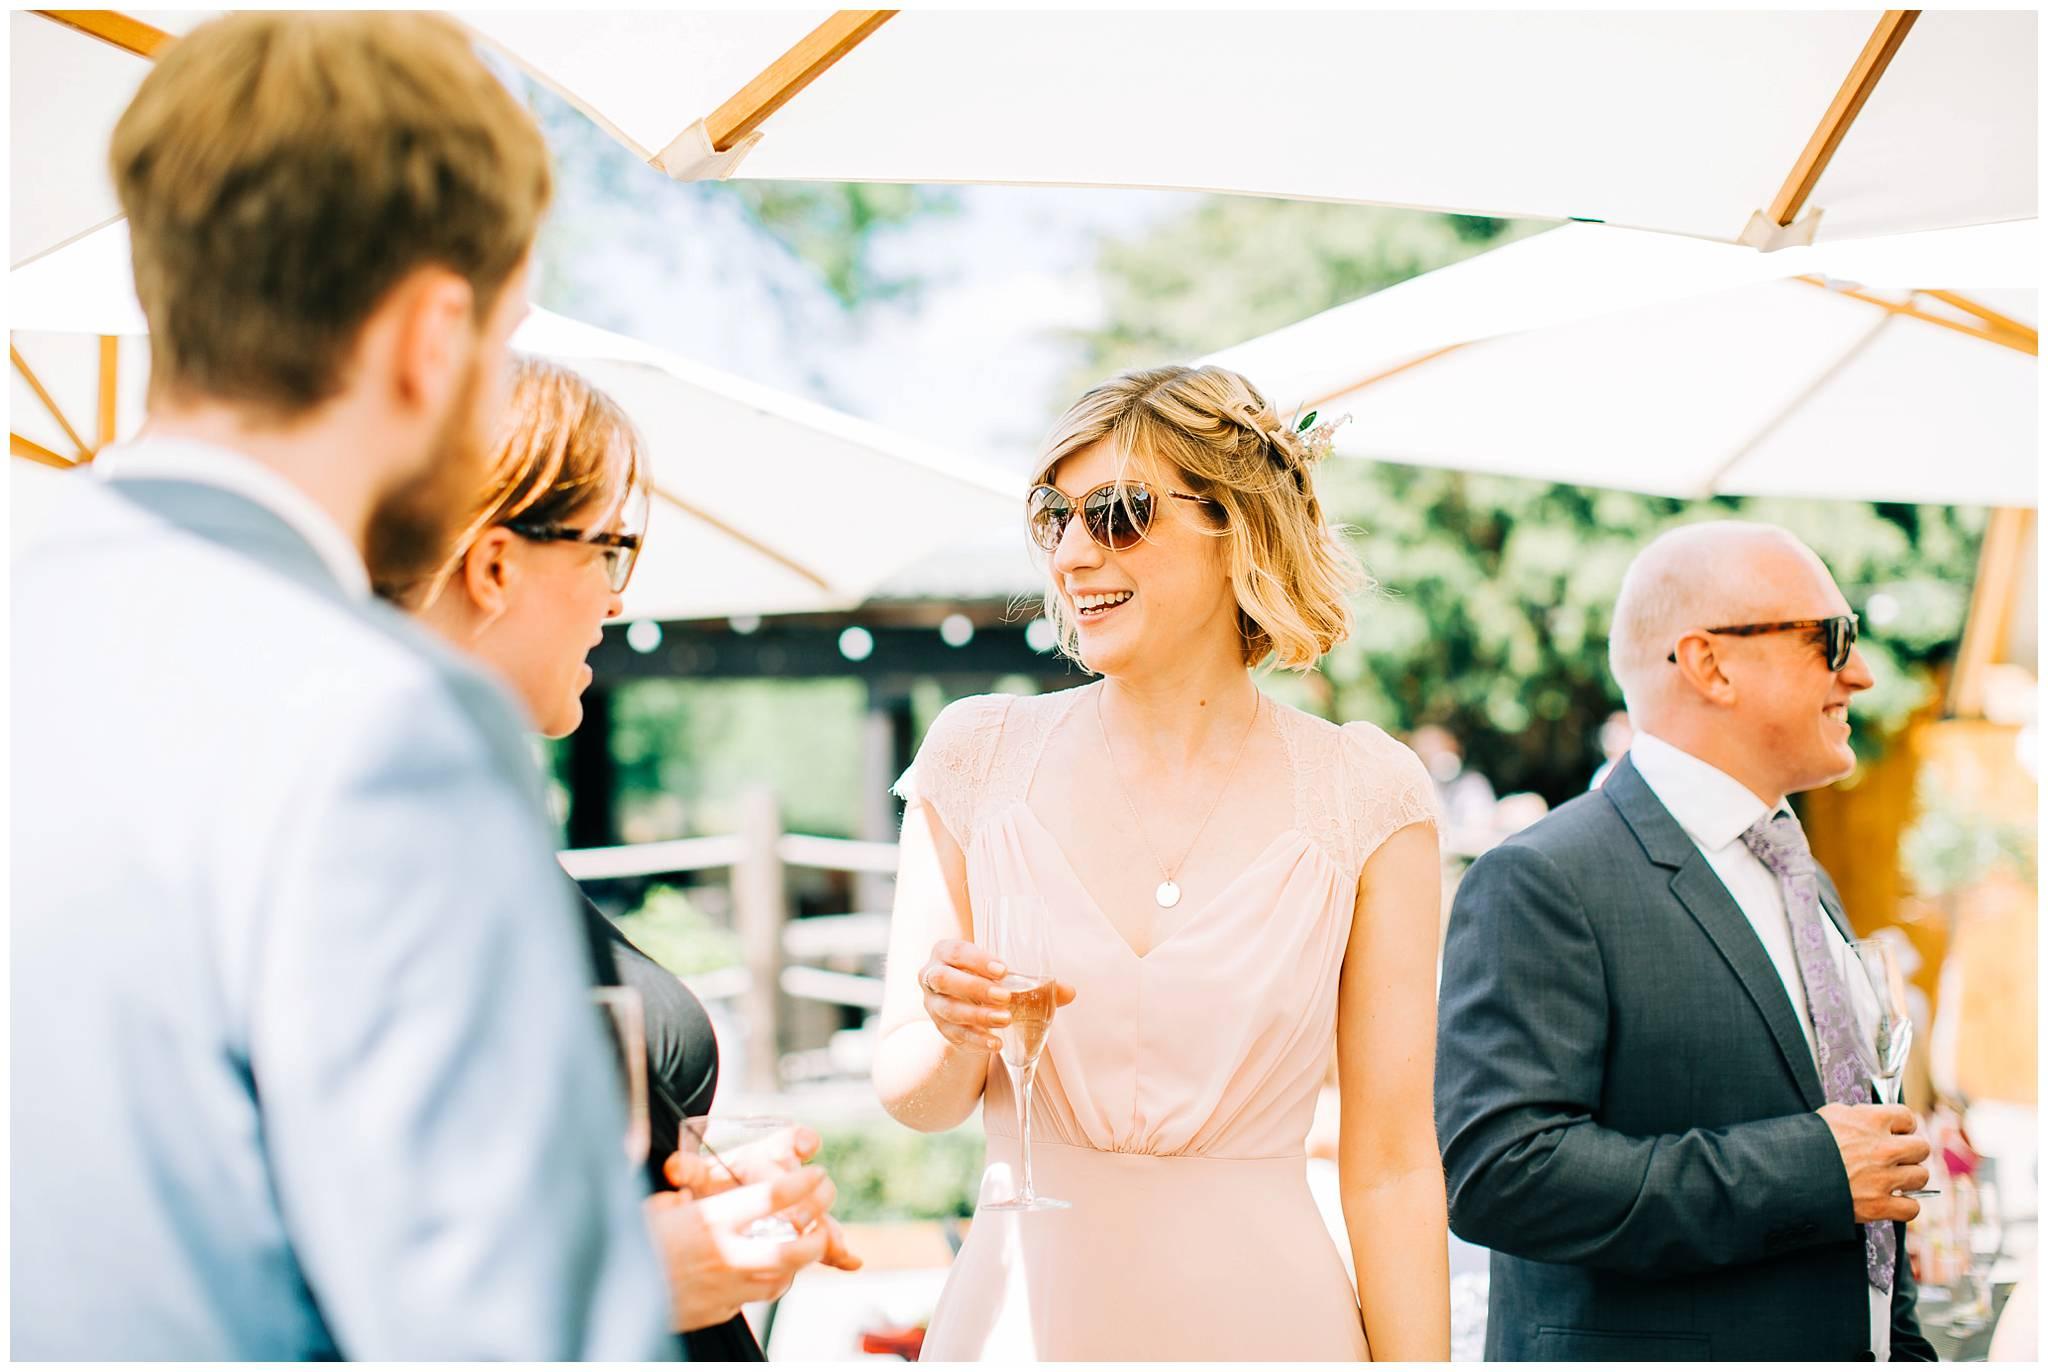 bridesmaid in light pink dress wearing sunglasses is talking to other guests